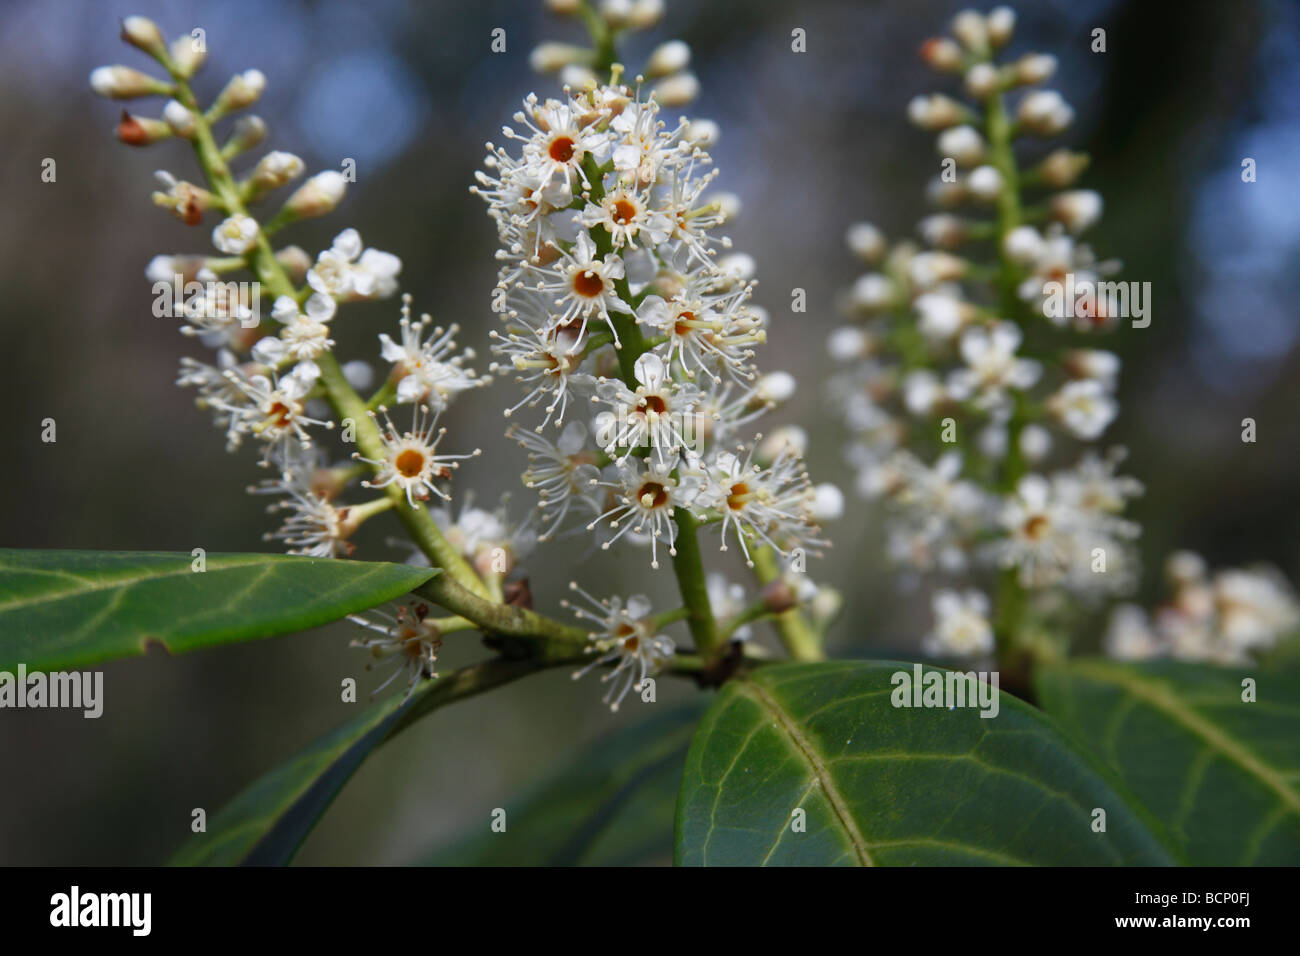 laurel Prunus laurocerasus close up of flower spikes - Stock Image